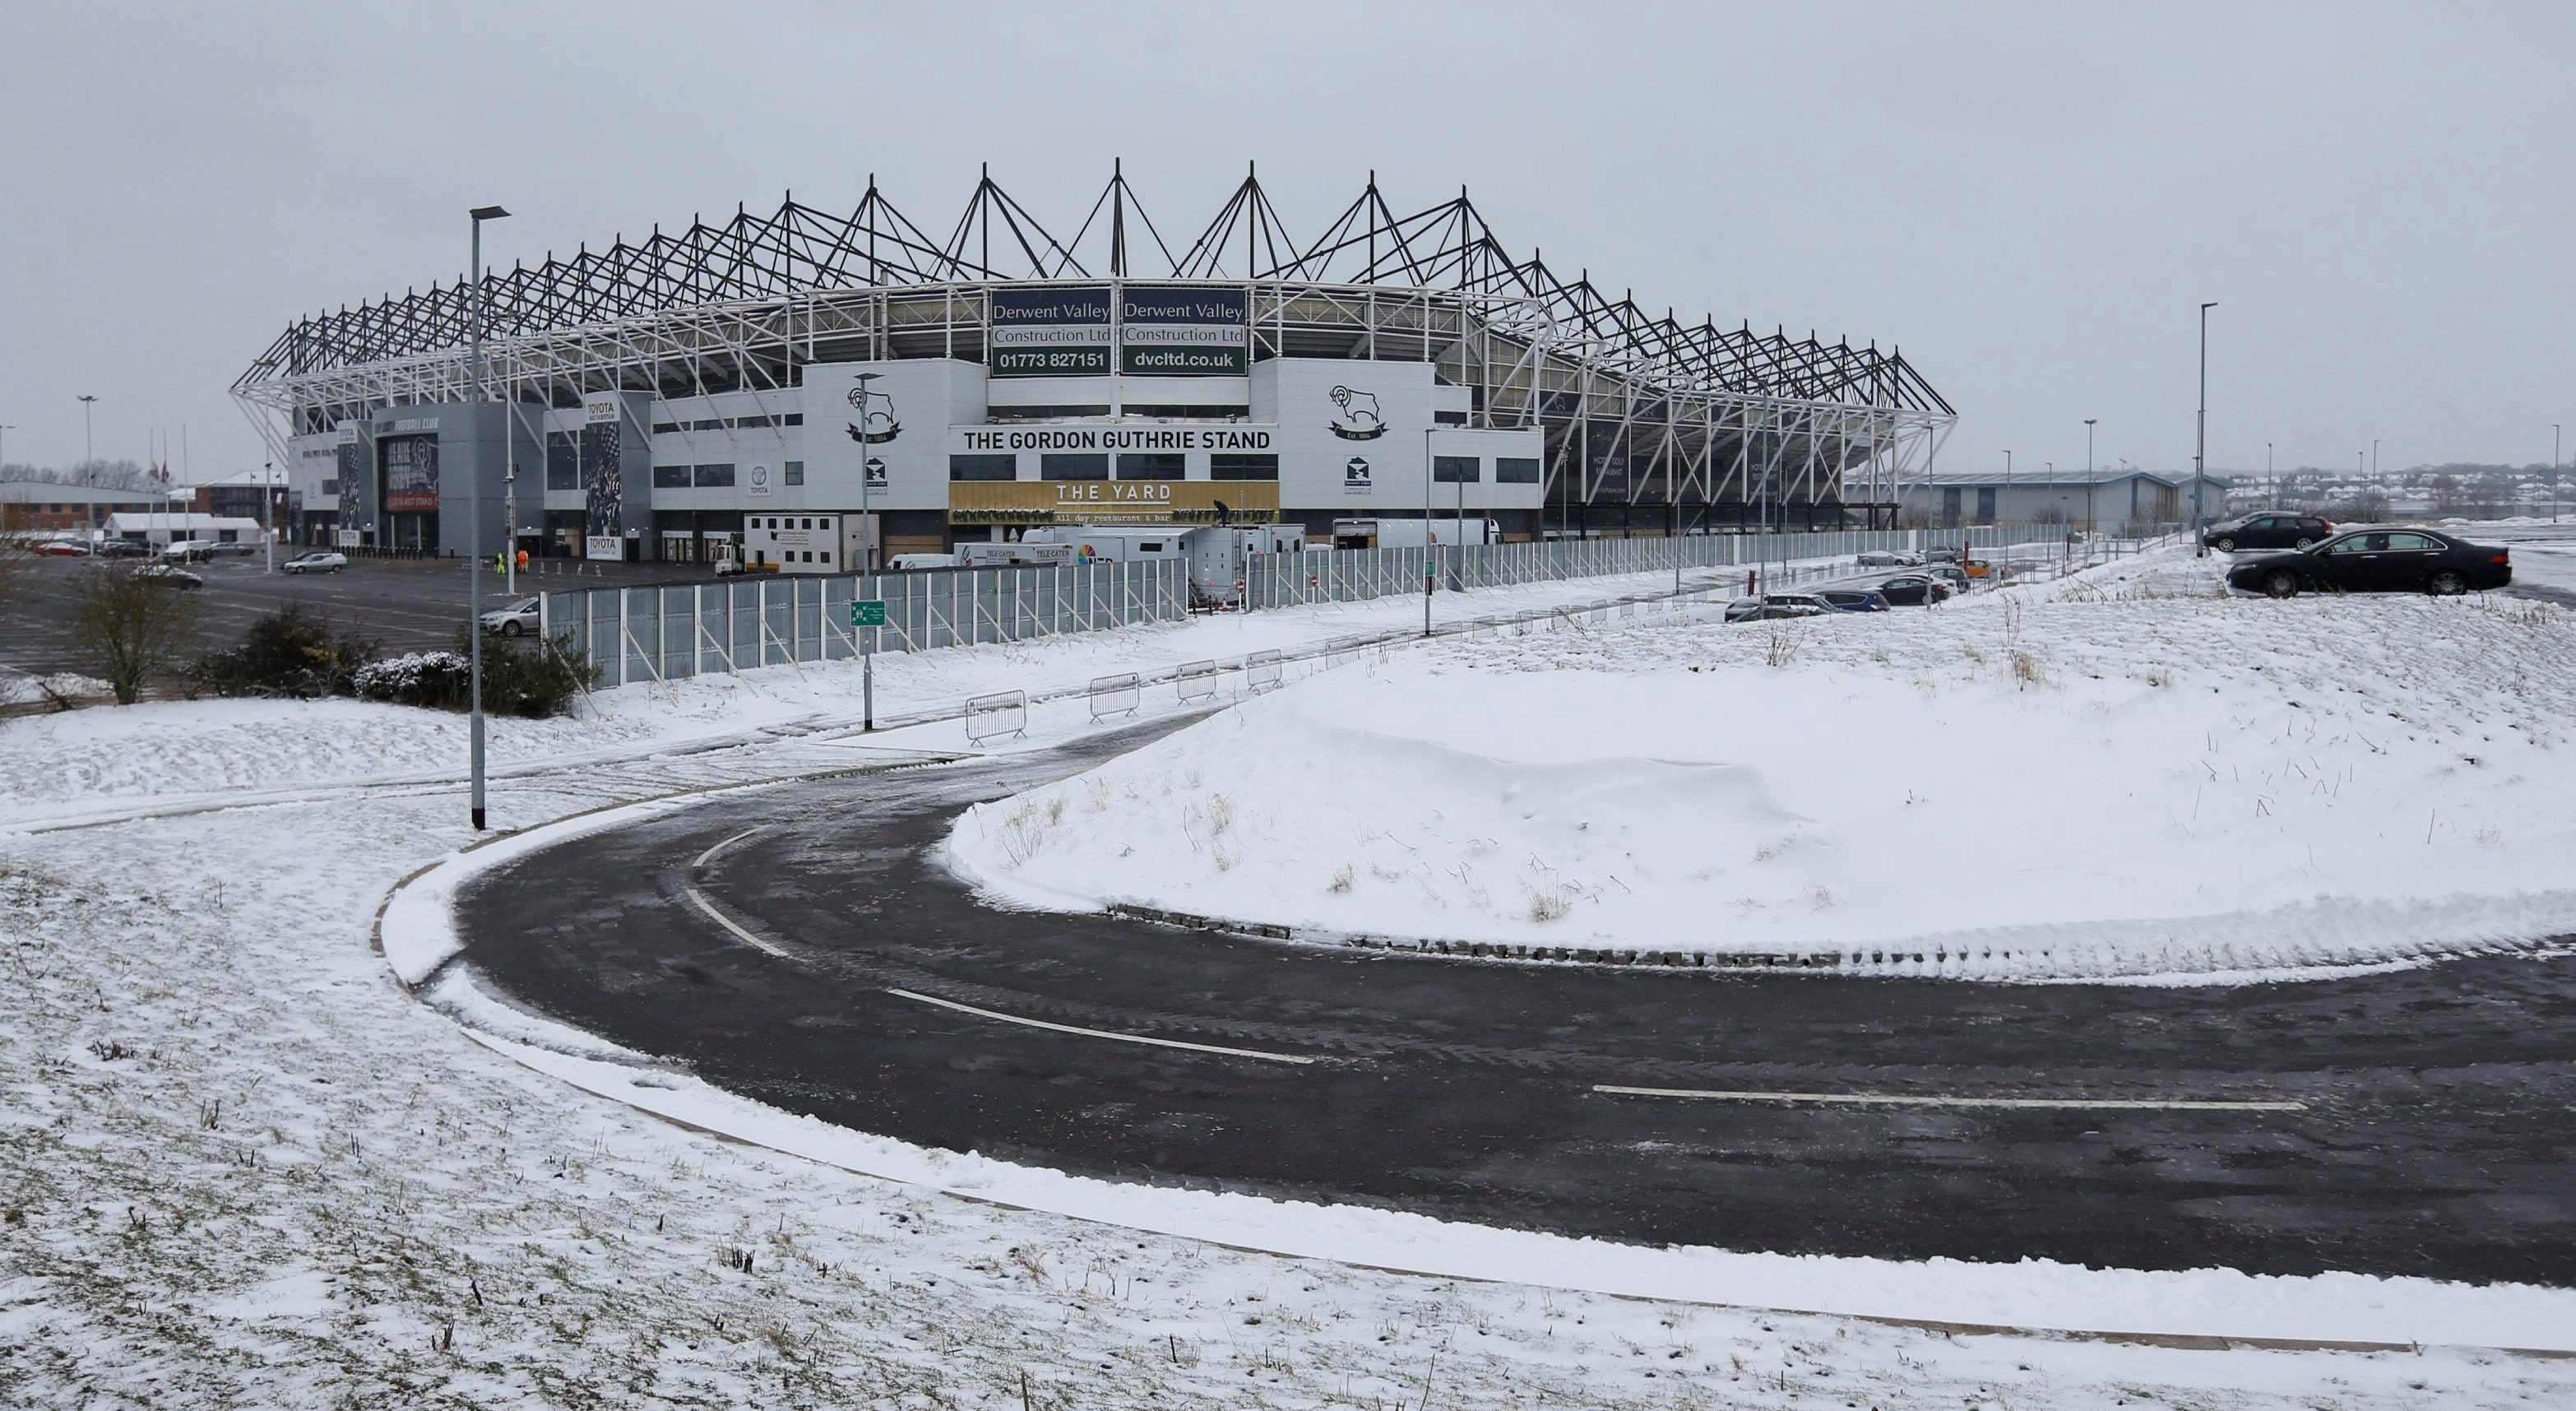 This was the wintry scene outside the stadium